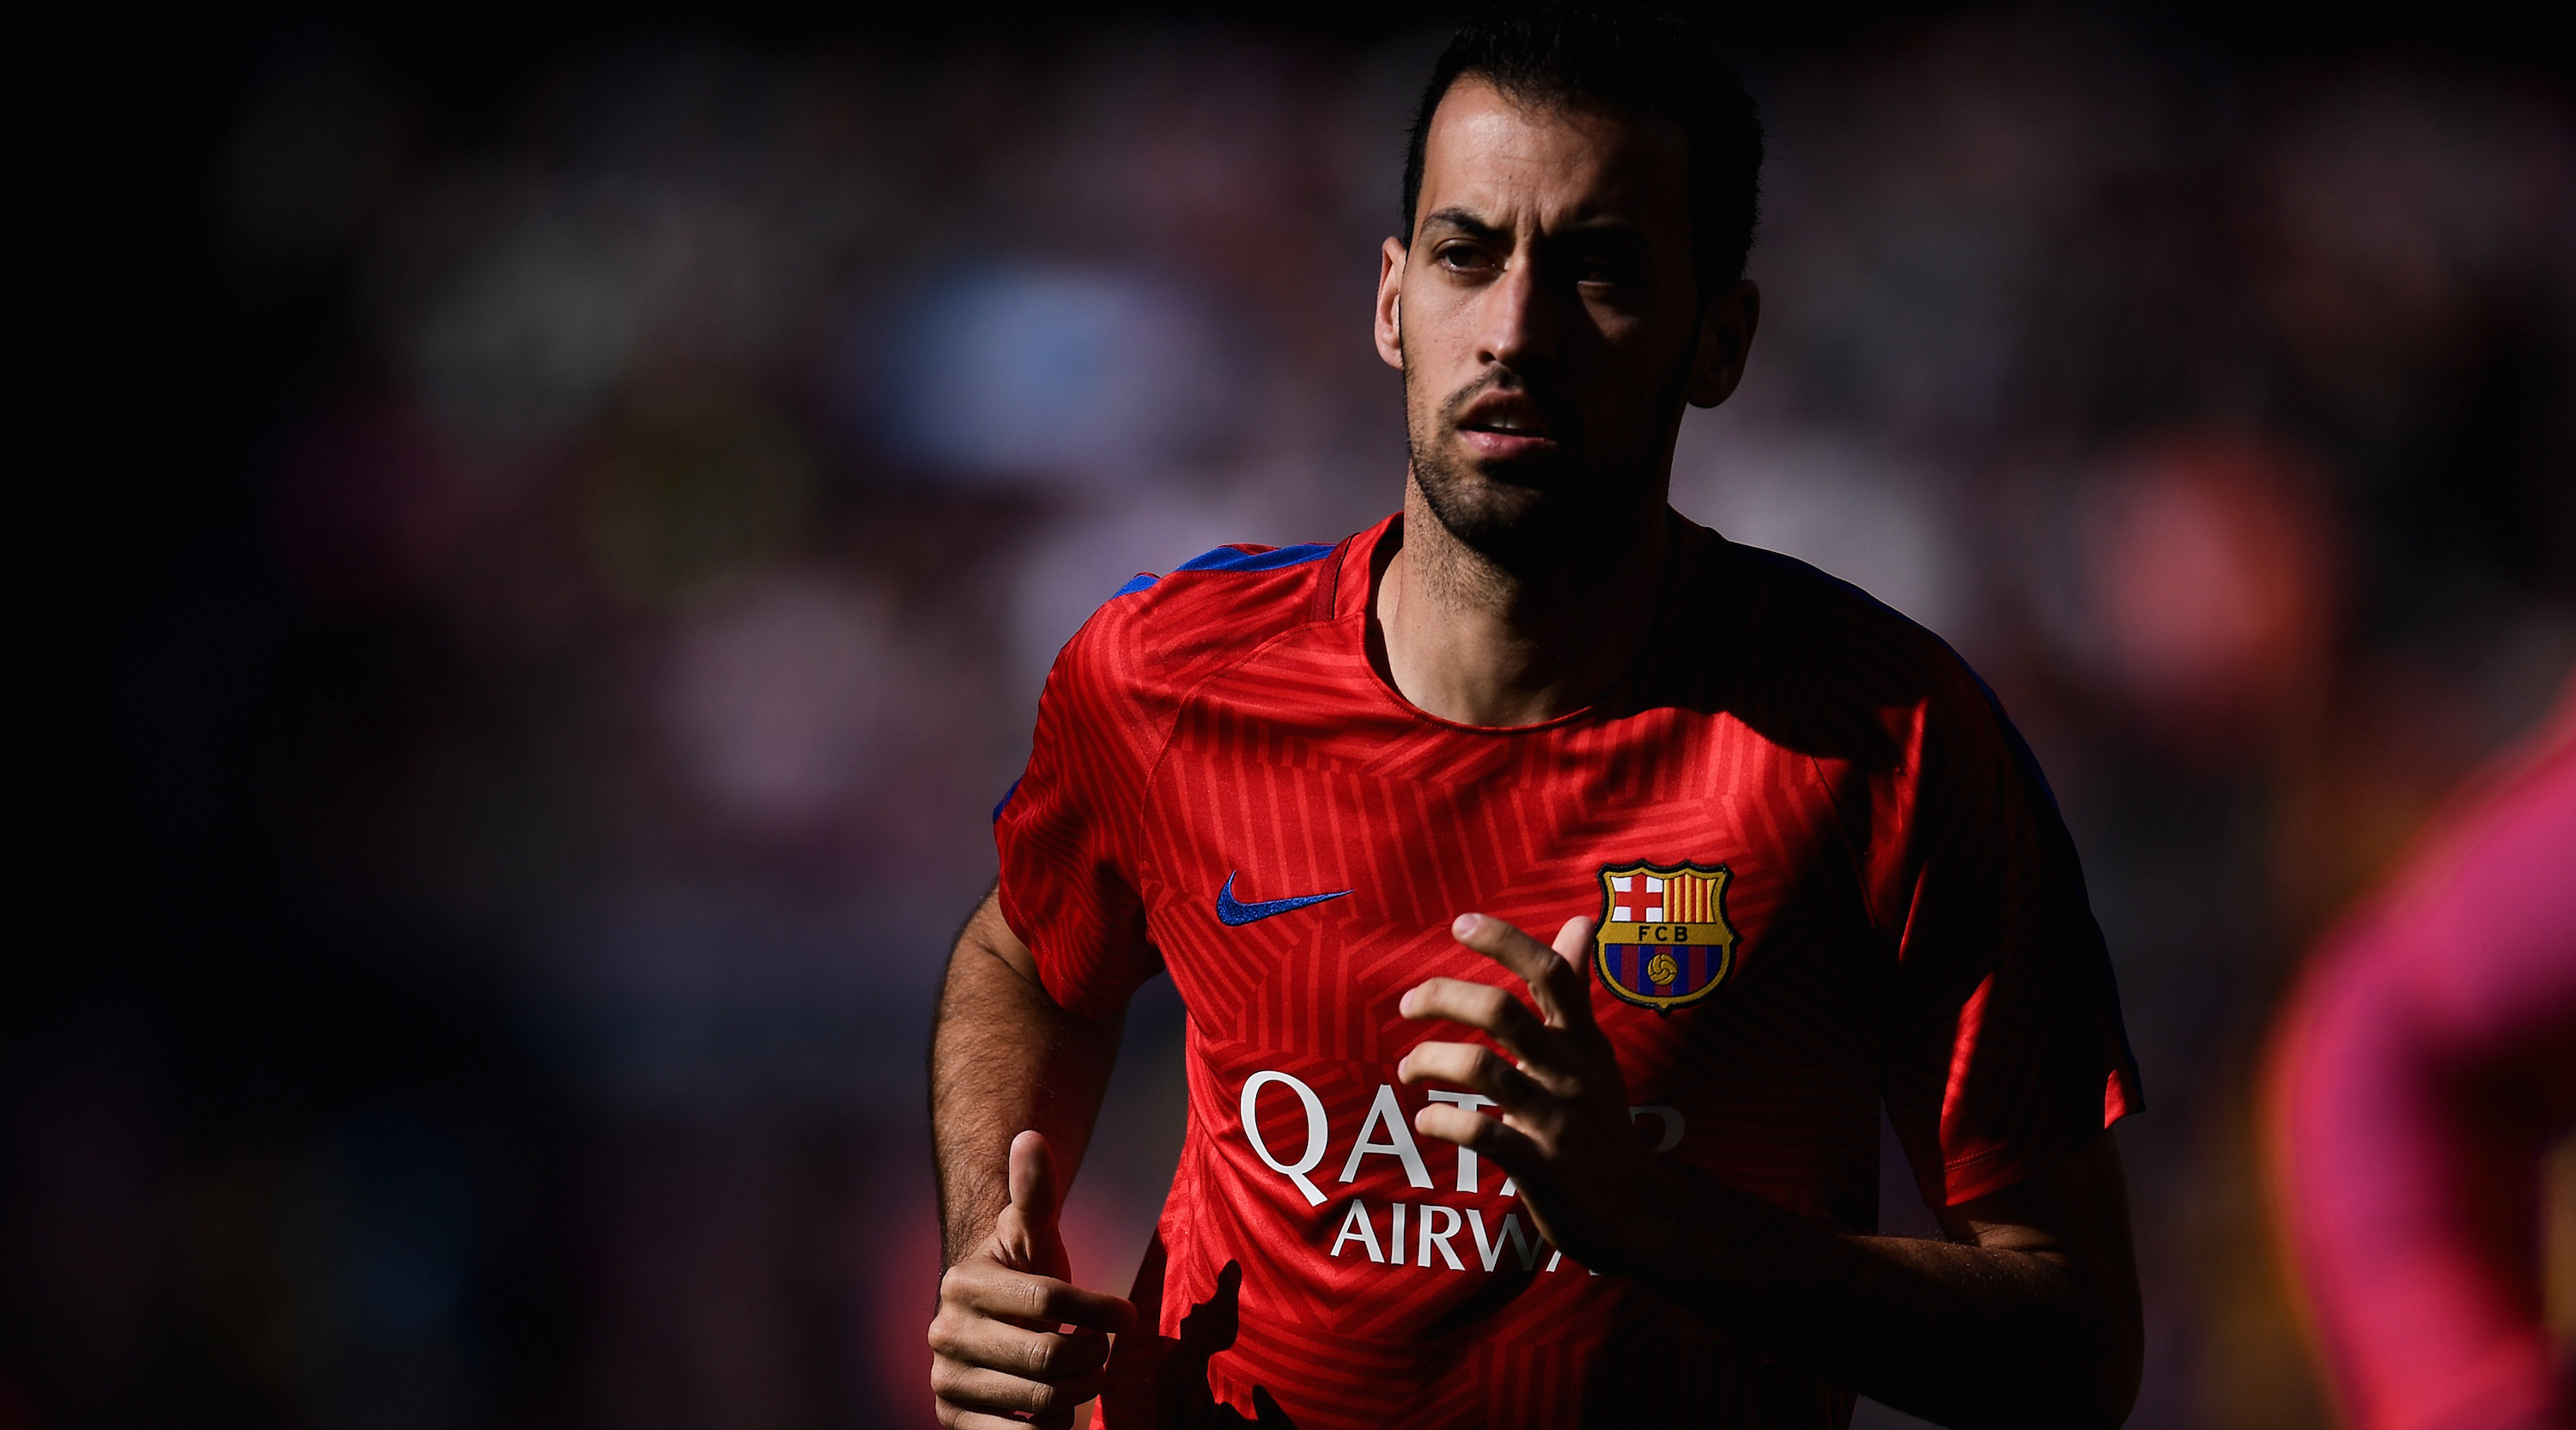 BARCELONA, SPAIN - OCTOBER 15: Sergio Busquets of FC Barcelona looks on during the warm up prior to the La Liga match between FC Barcelona and RC Deportivo La Coruna at Camp Nou stadium on October 15, 2016 in Barcelona, Spain. (Photo by David Ramos/Getty Images)